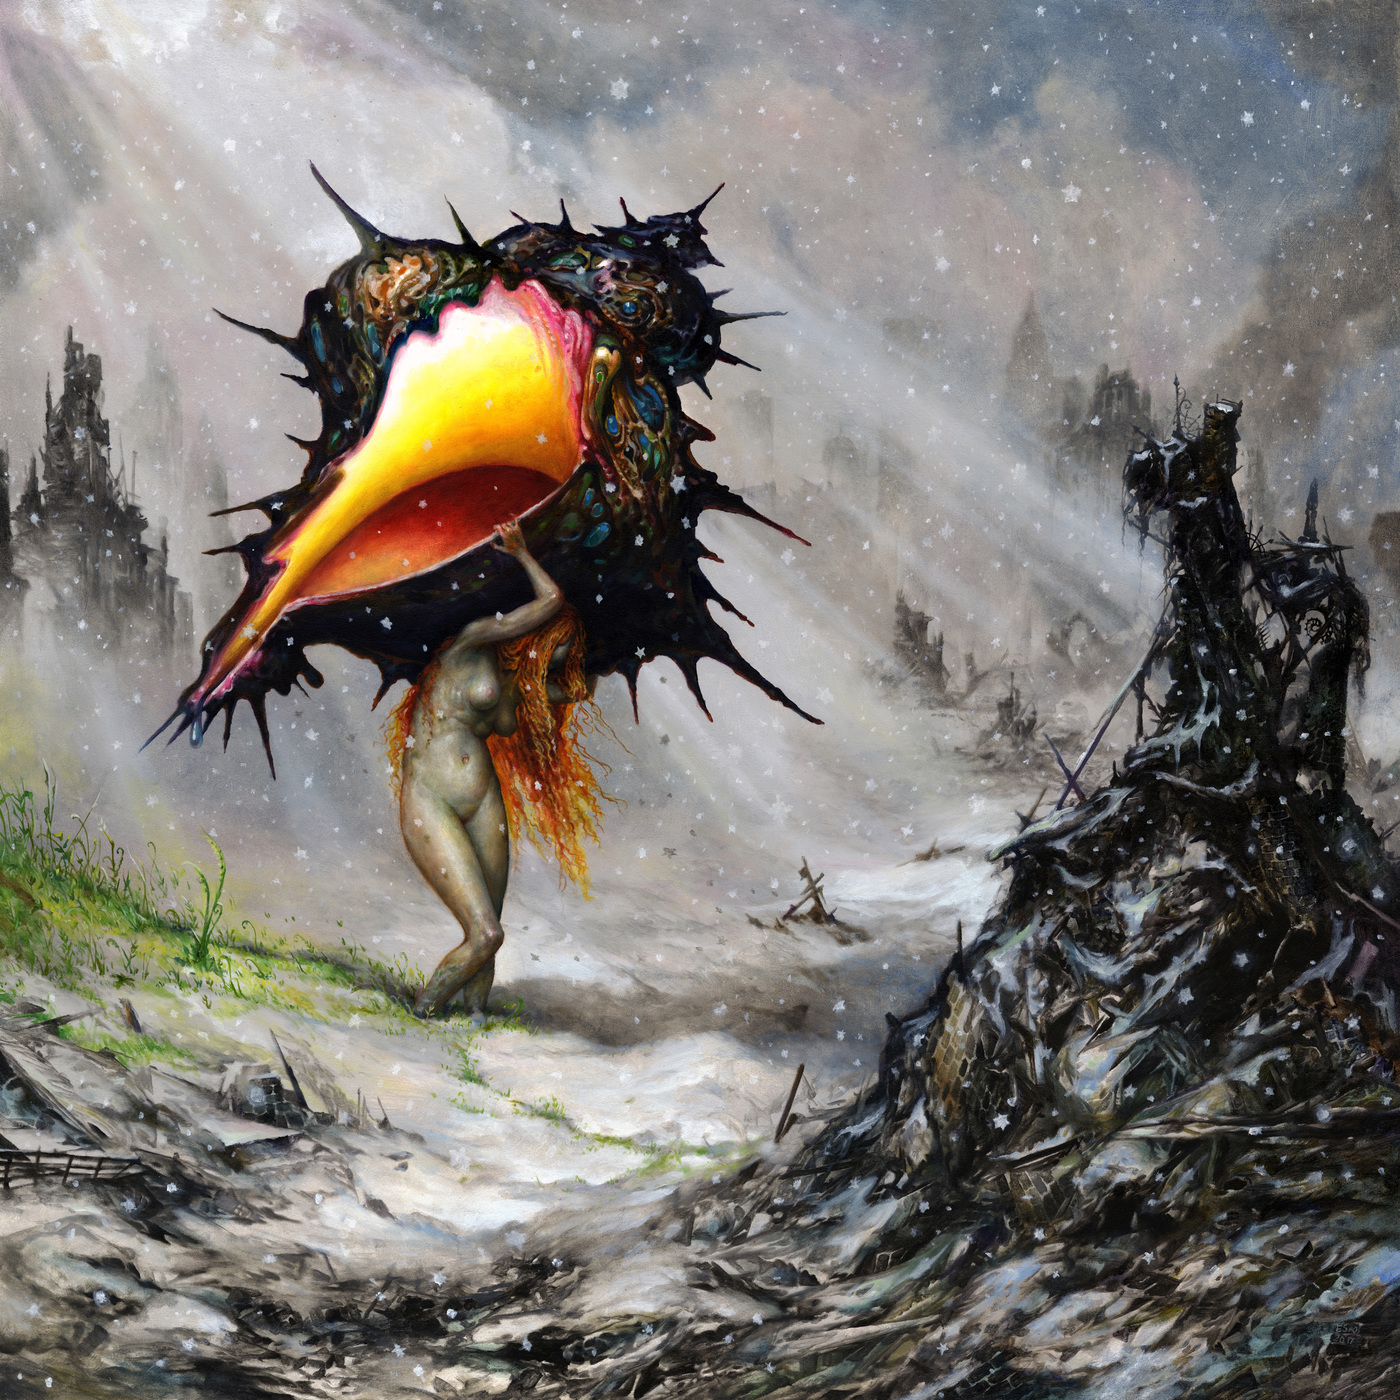 Circa Survive - The Amulet [Deluxe] (2018)